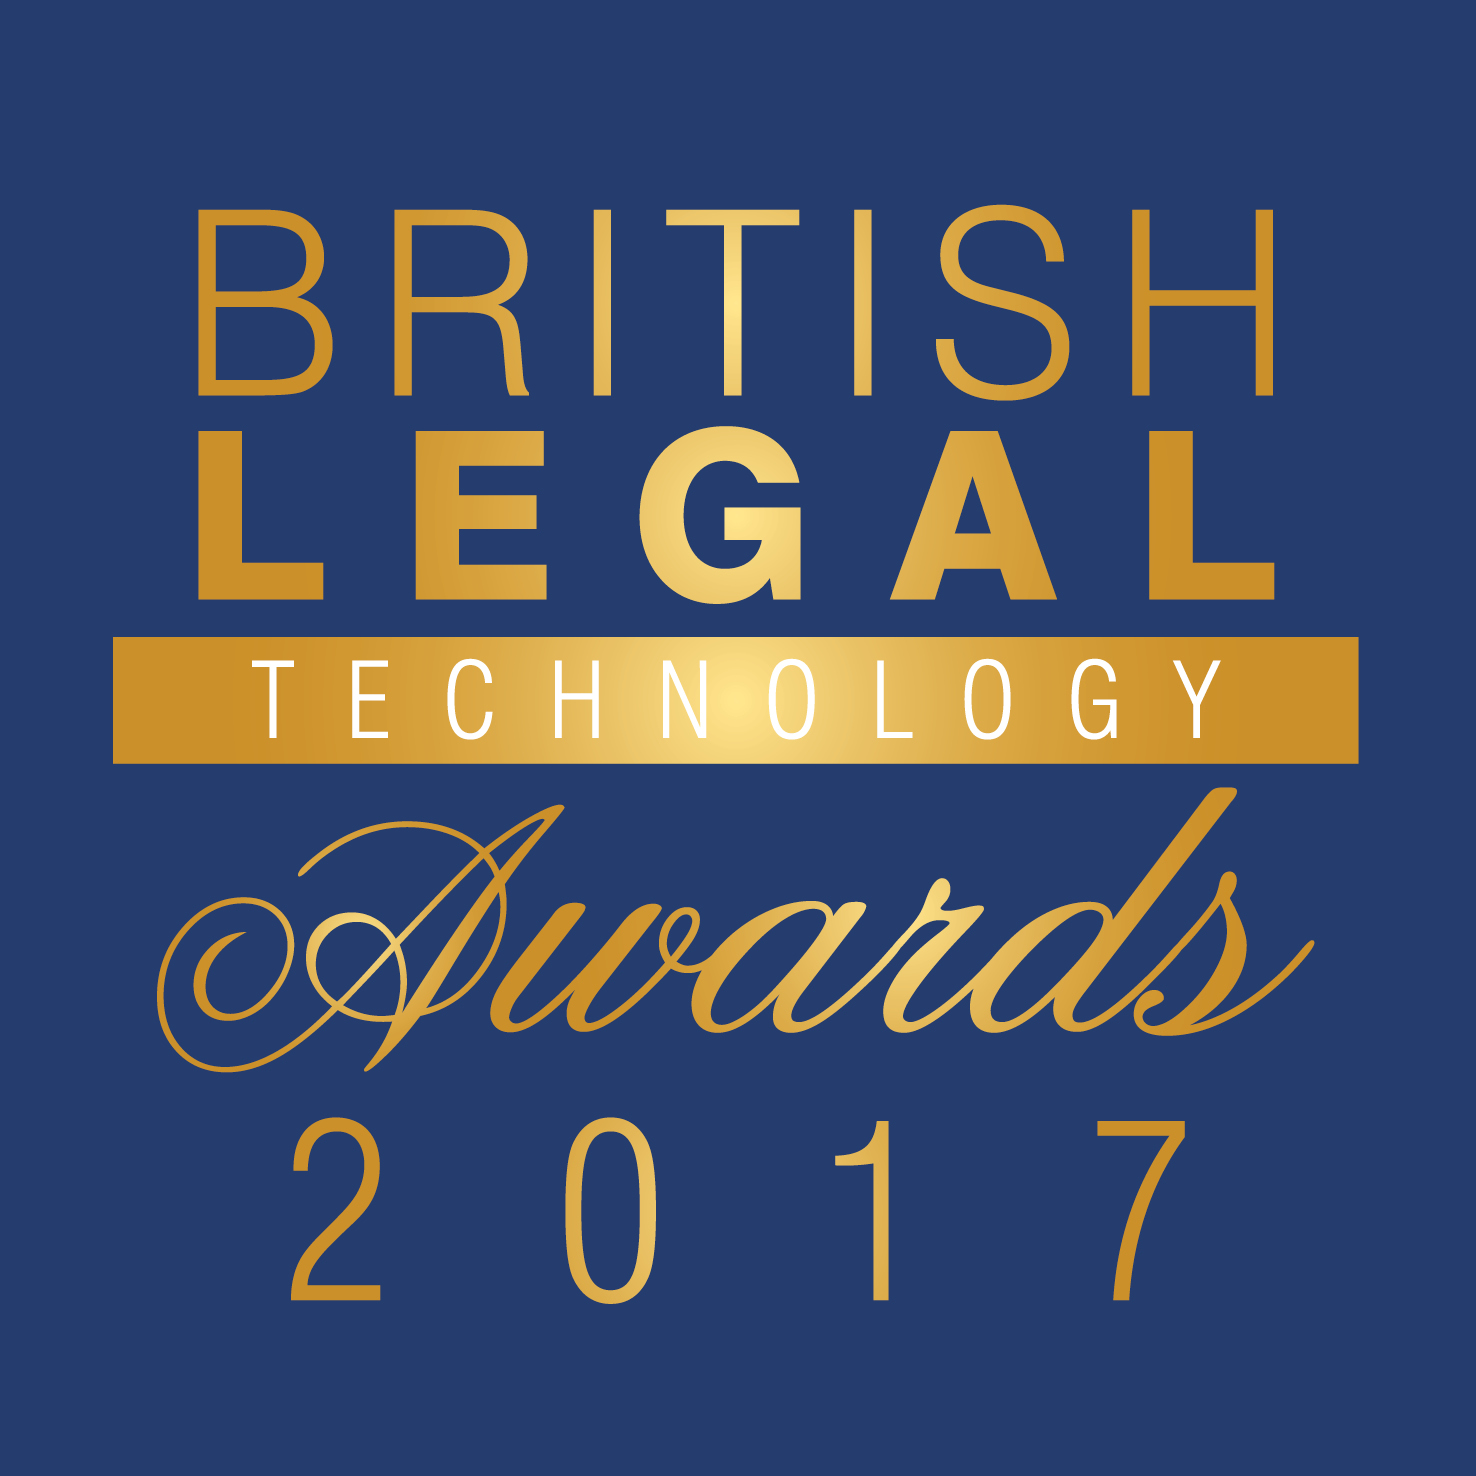 British Legal Technology Forum 2017 - Europe's largest legal technology conference and exhibition - An Event by Netlaw Media